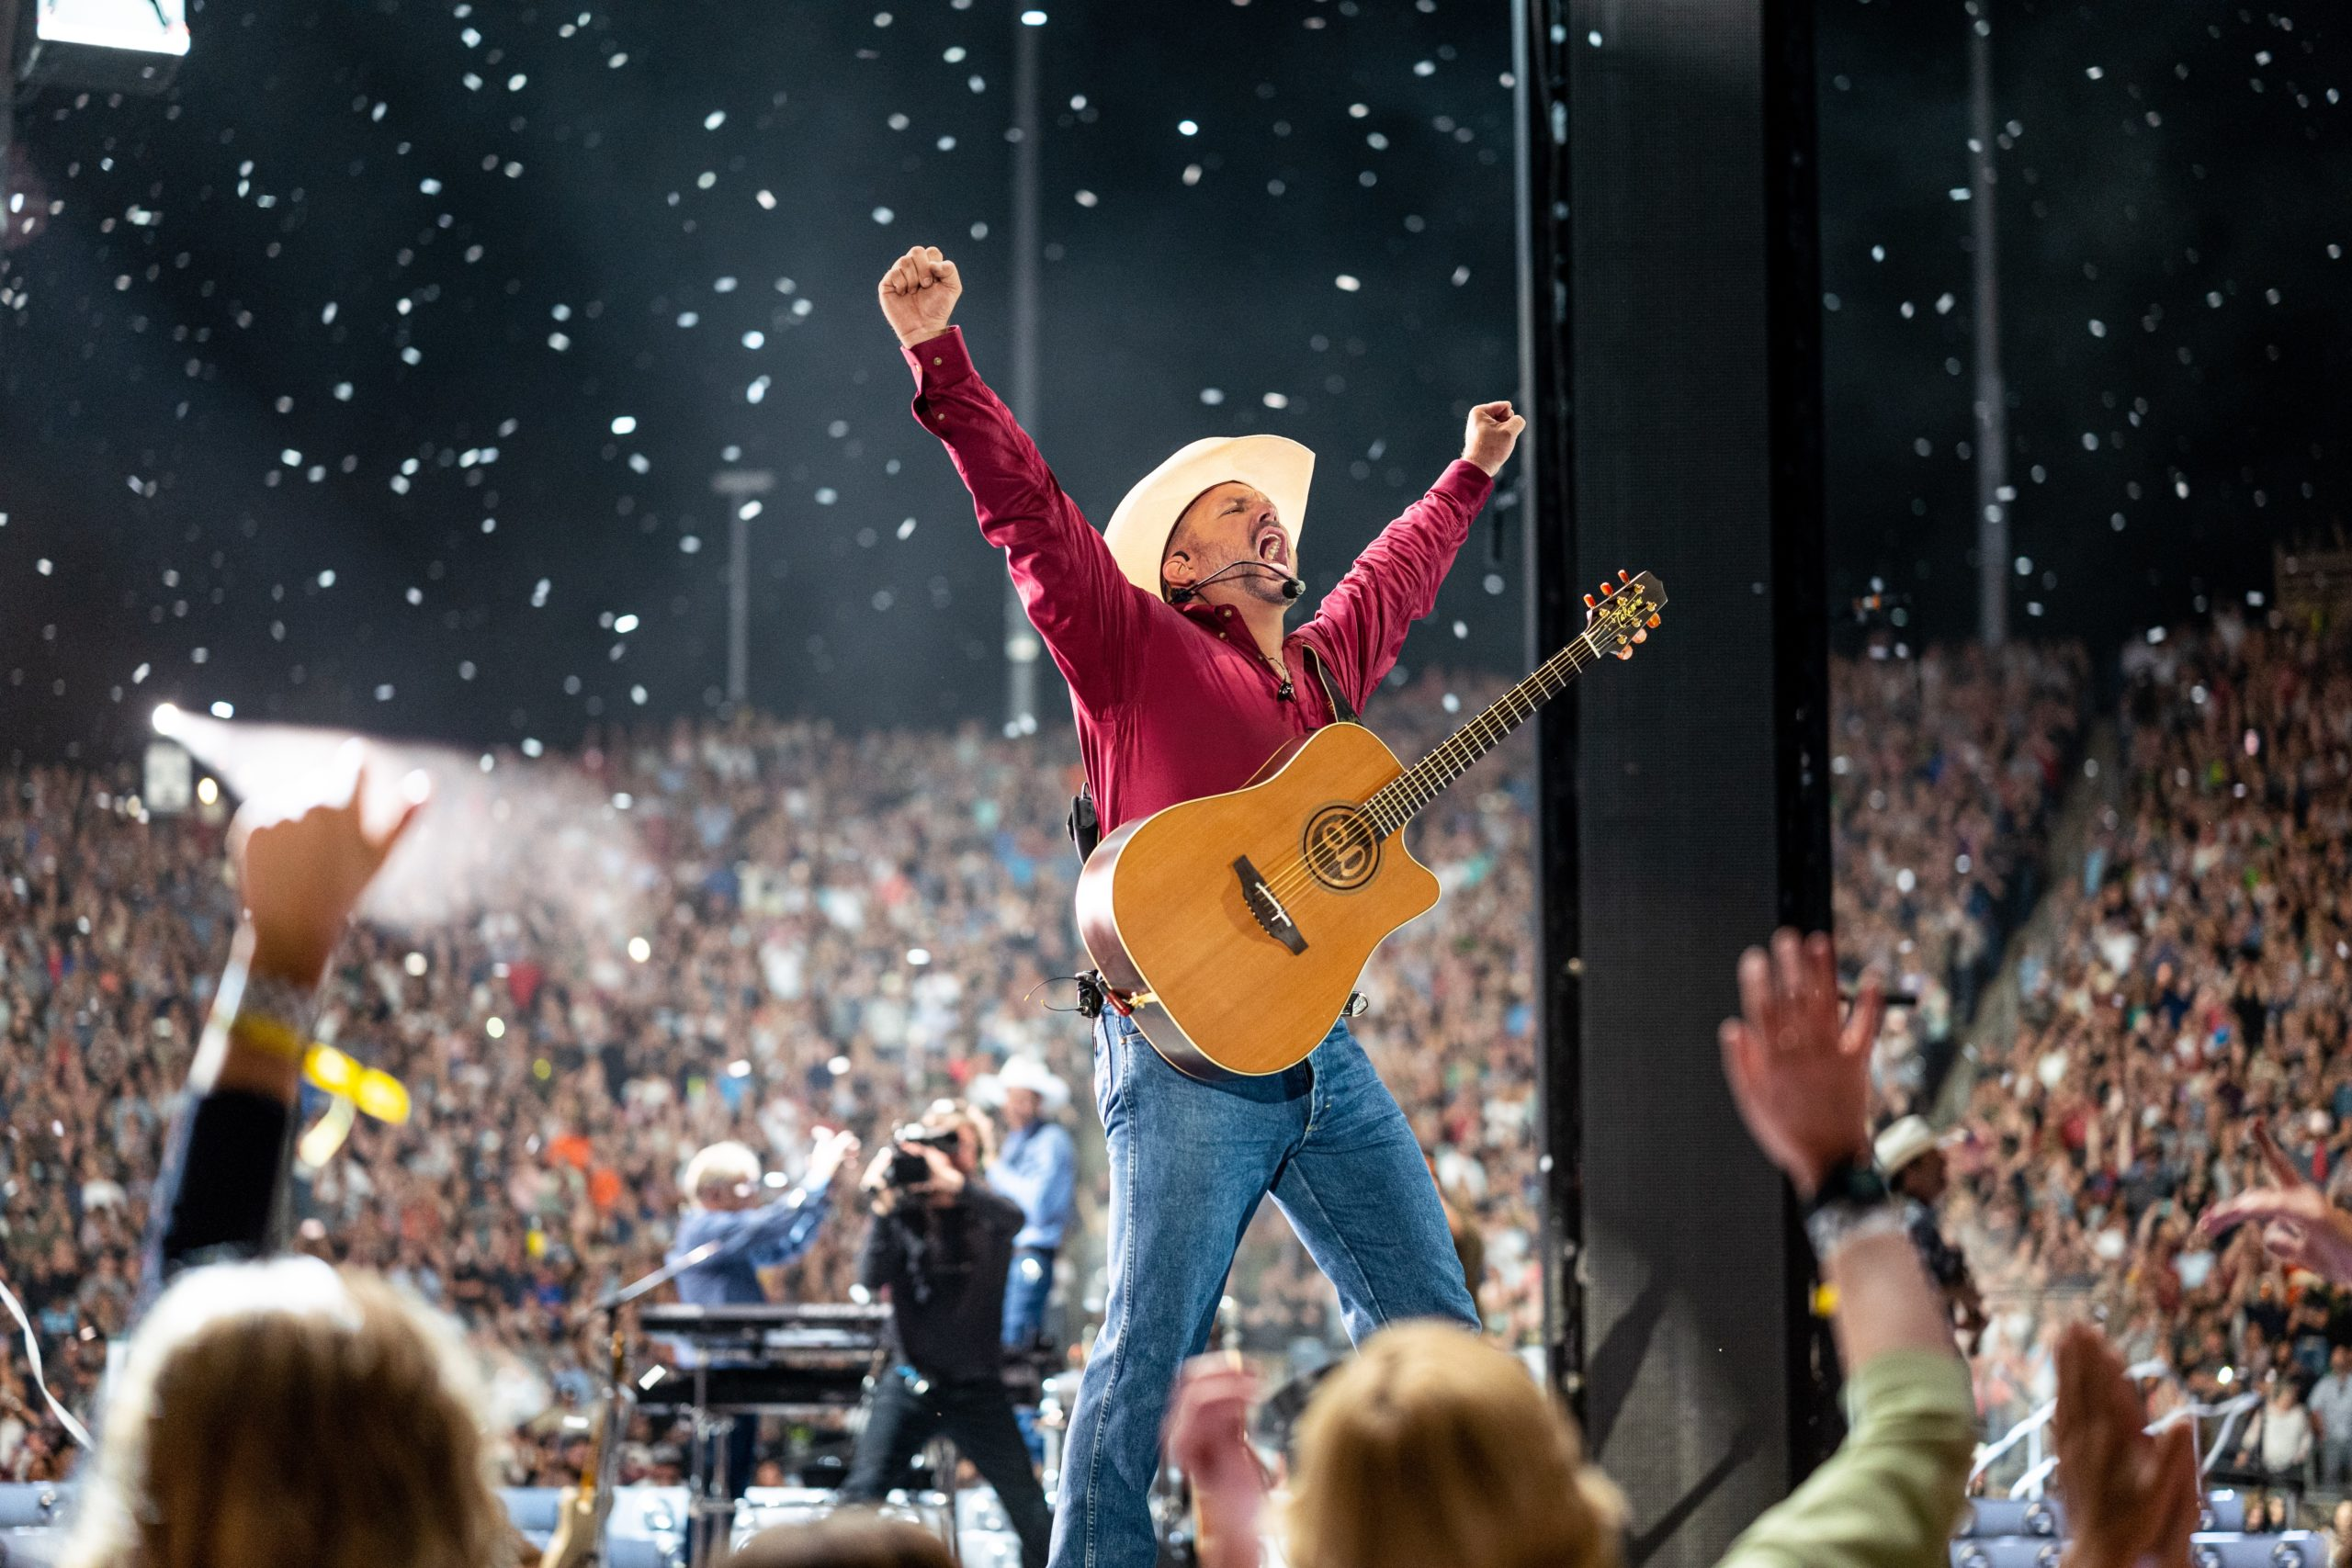 GARTH BROOKS A DRIVE-IN CONCERT EXPERIENCE TICKETS ON SALE NOW!